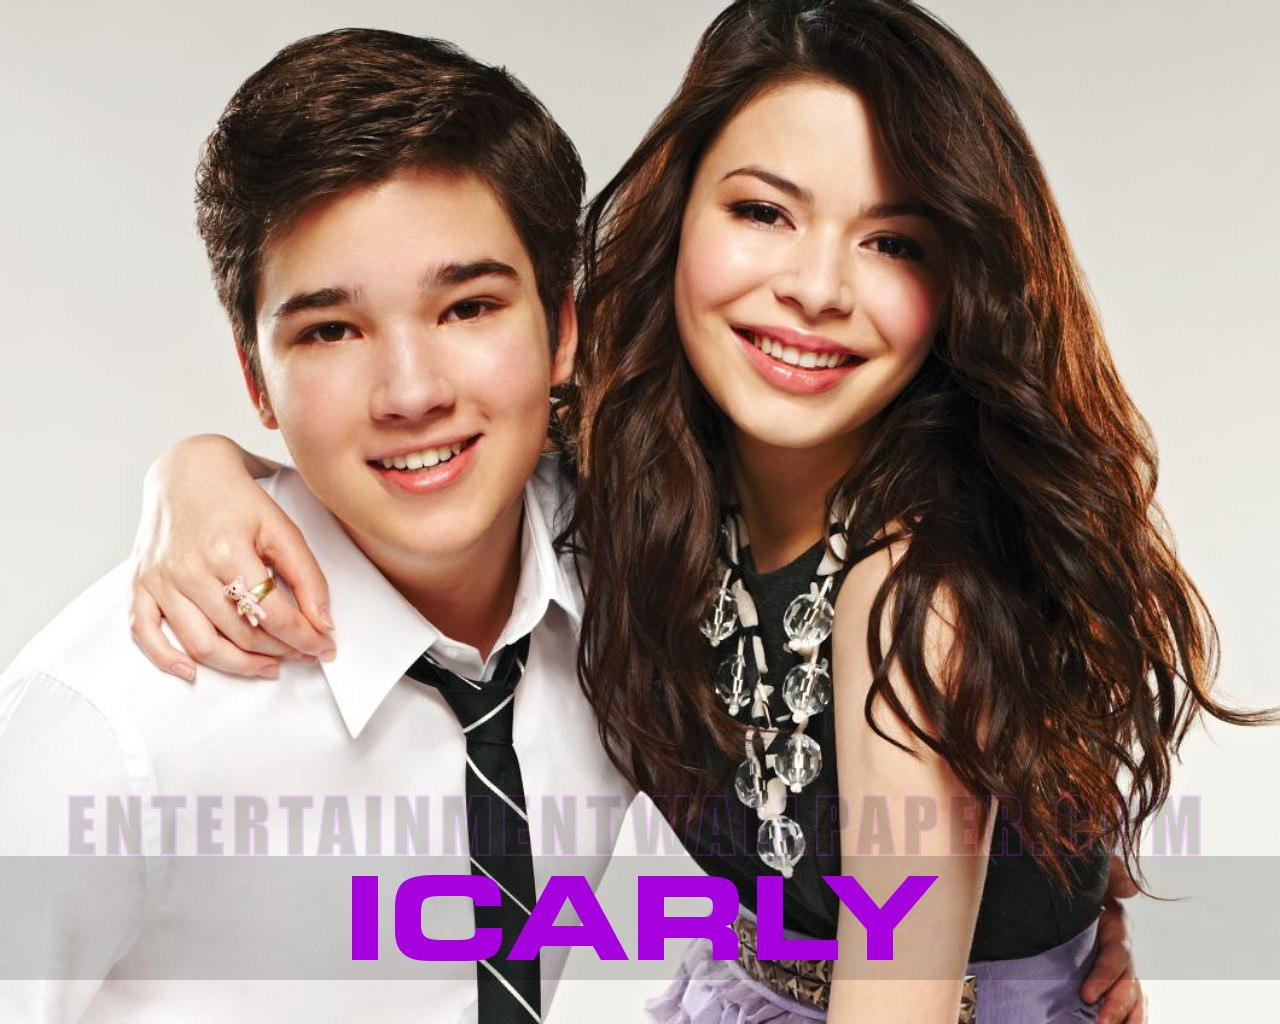 icarly-tapeta-na-pulpit (10)